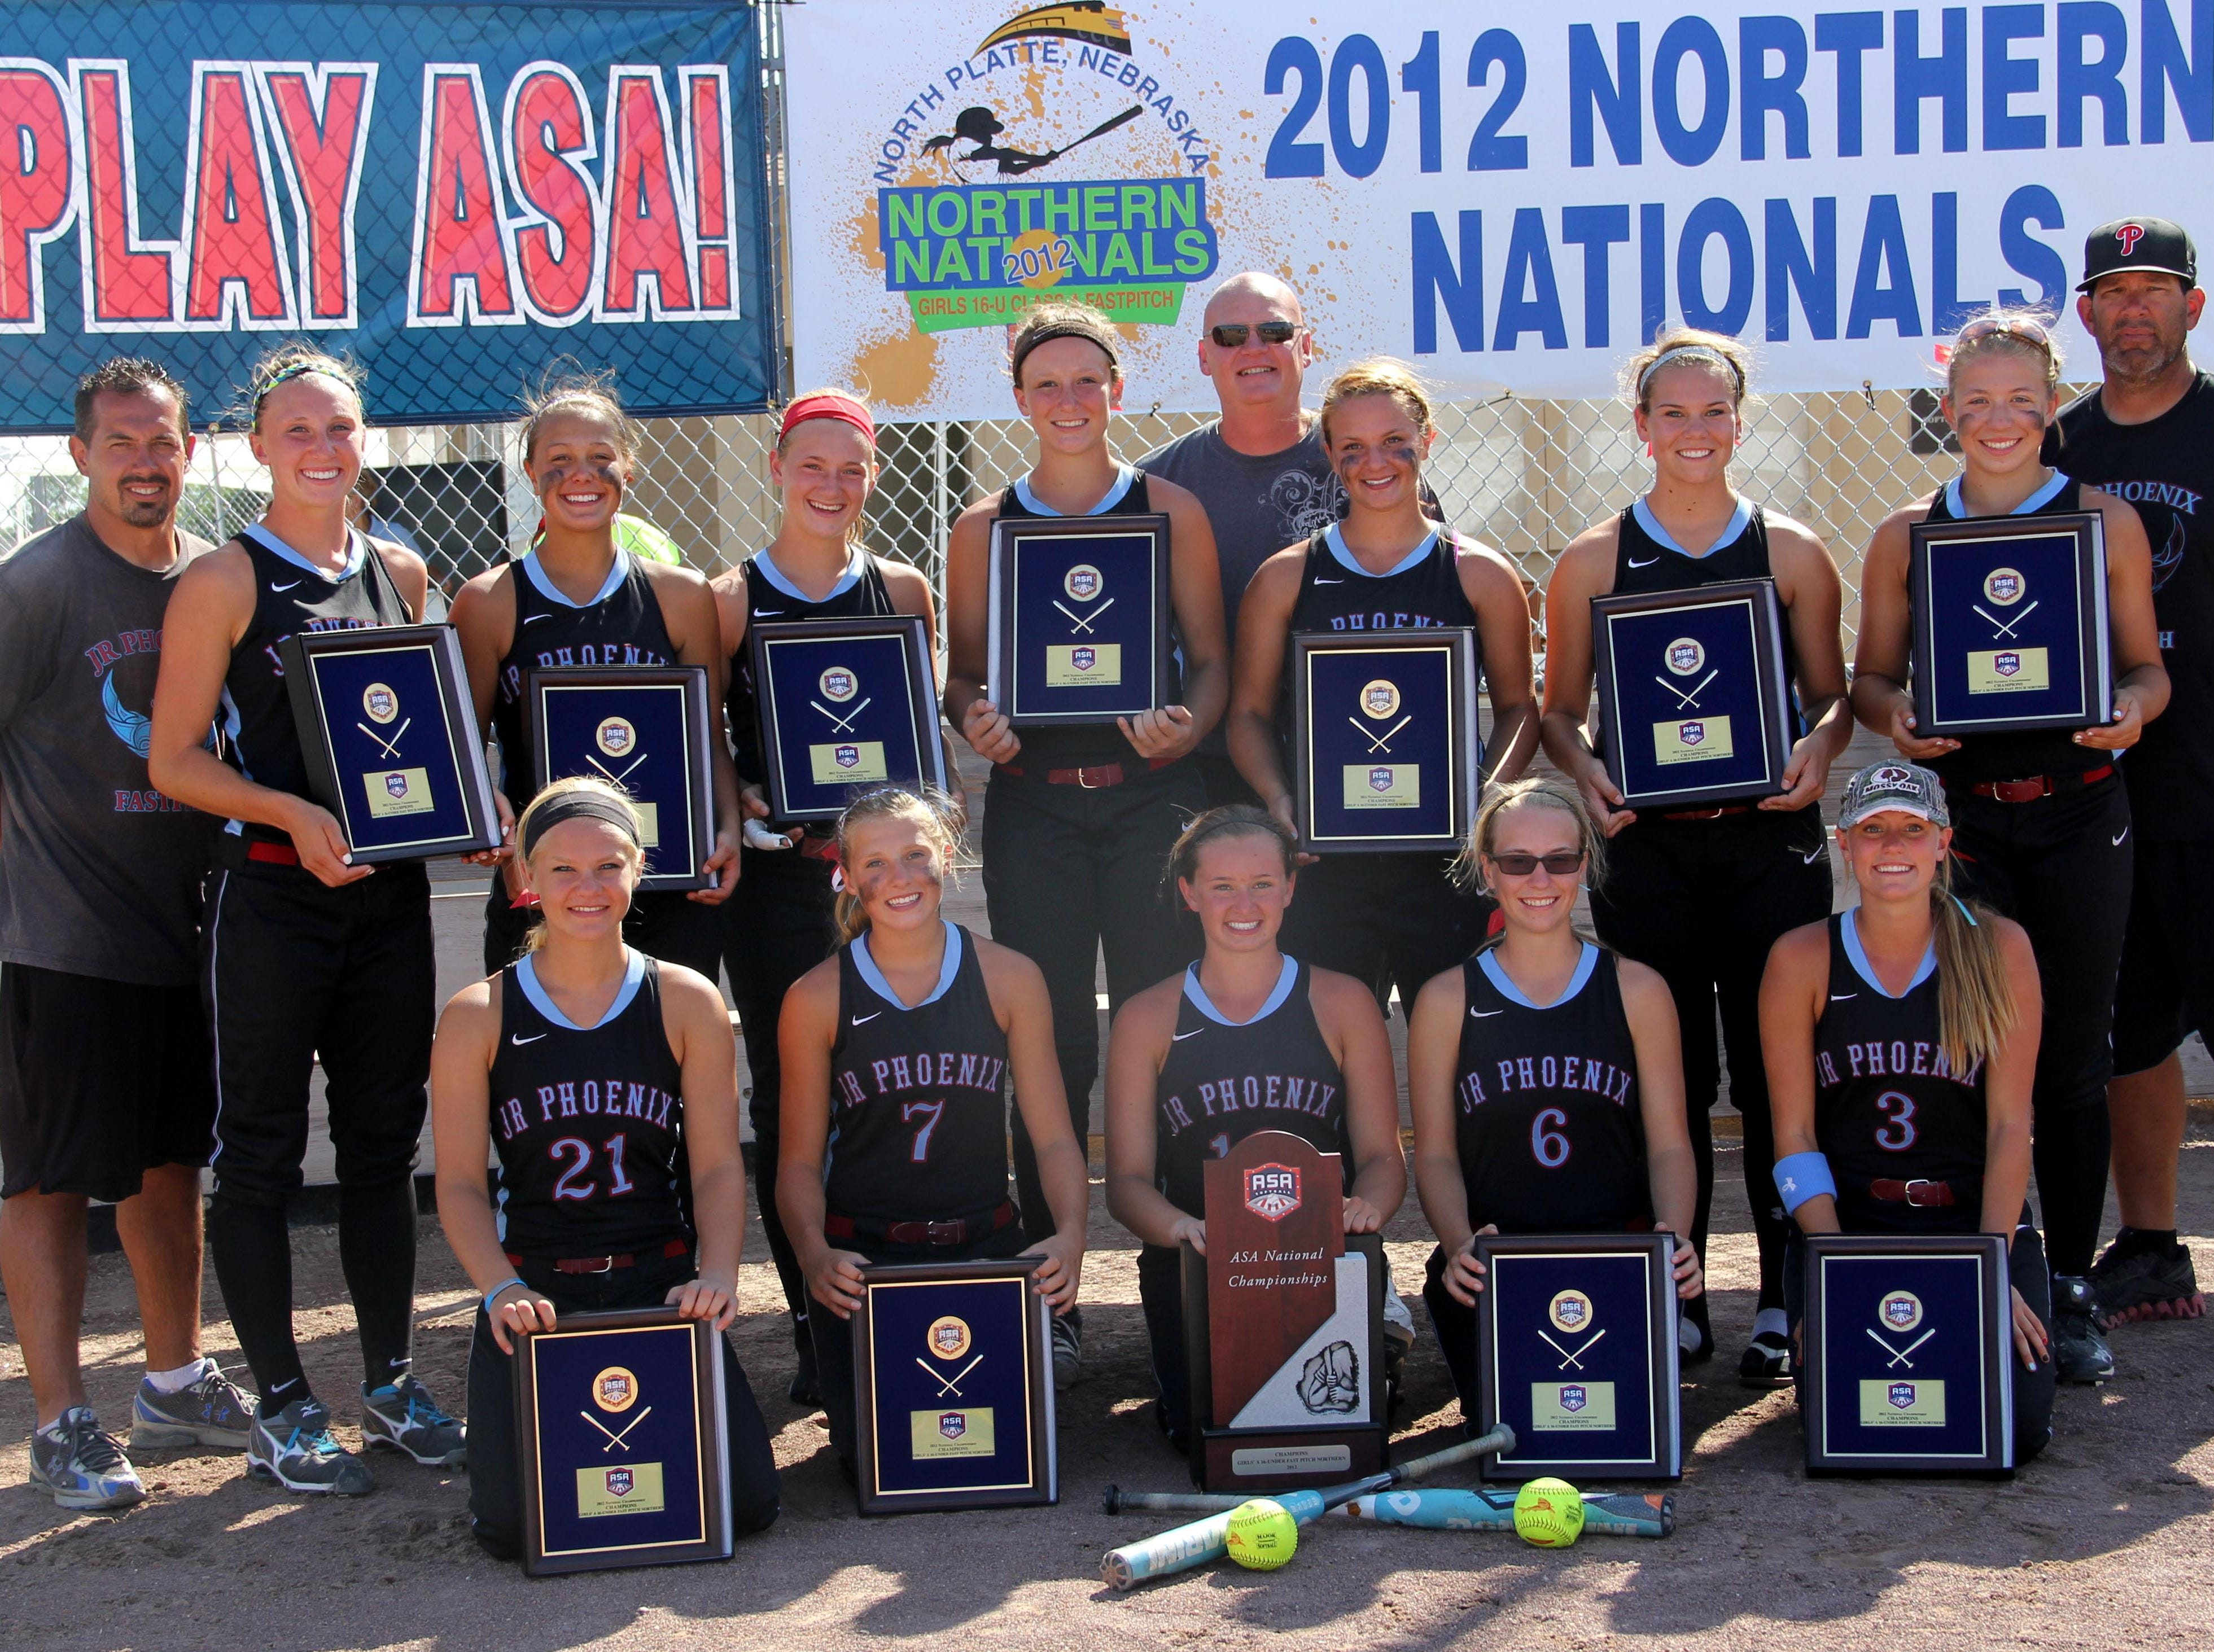 Potential UL transfer Megan Kleist (four from left on top) is shown here on team winning the 2012 ASA Class A 16U national championship with a 7-1 record in North Platte, Neb. The team was coached by current UL pitching coach Mike Roberts (top row, far right.)